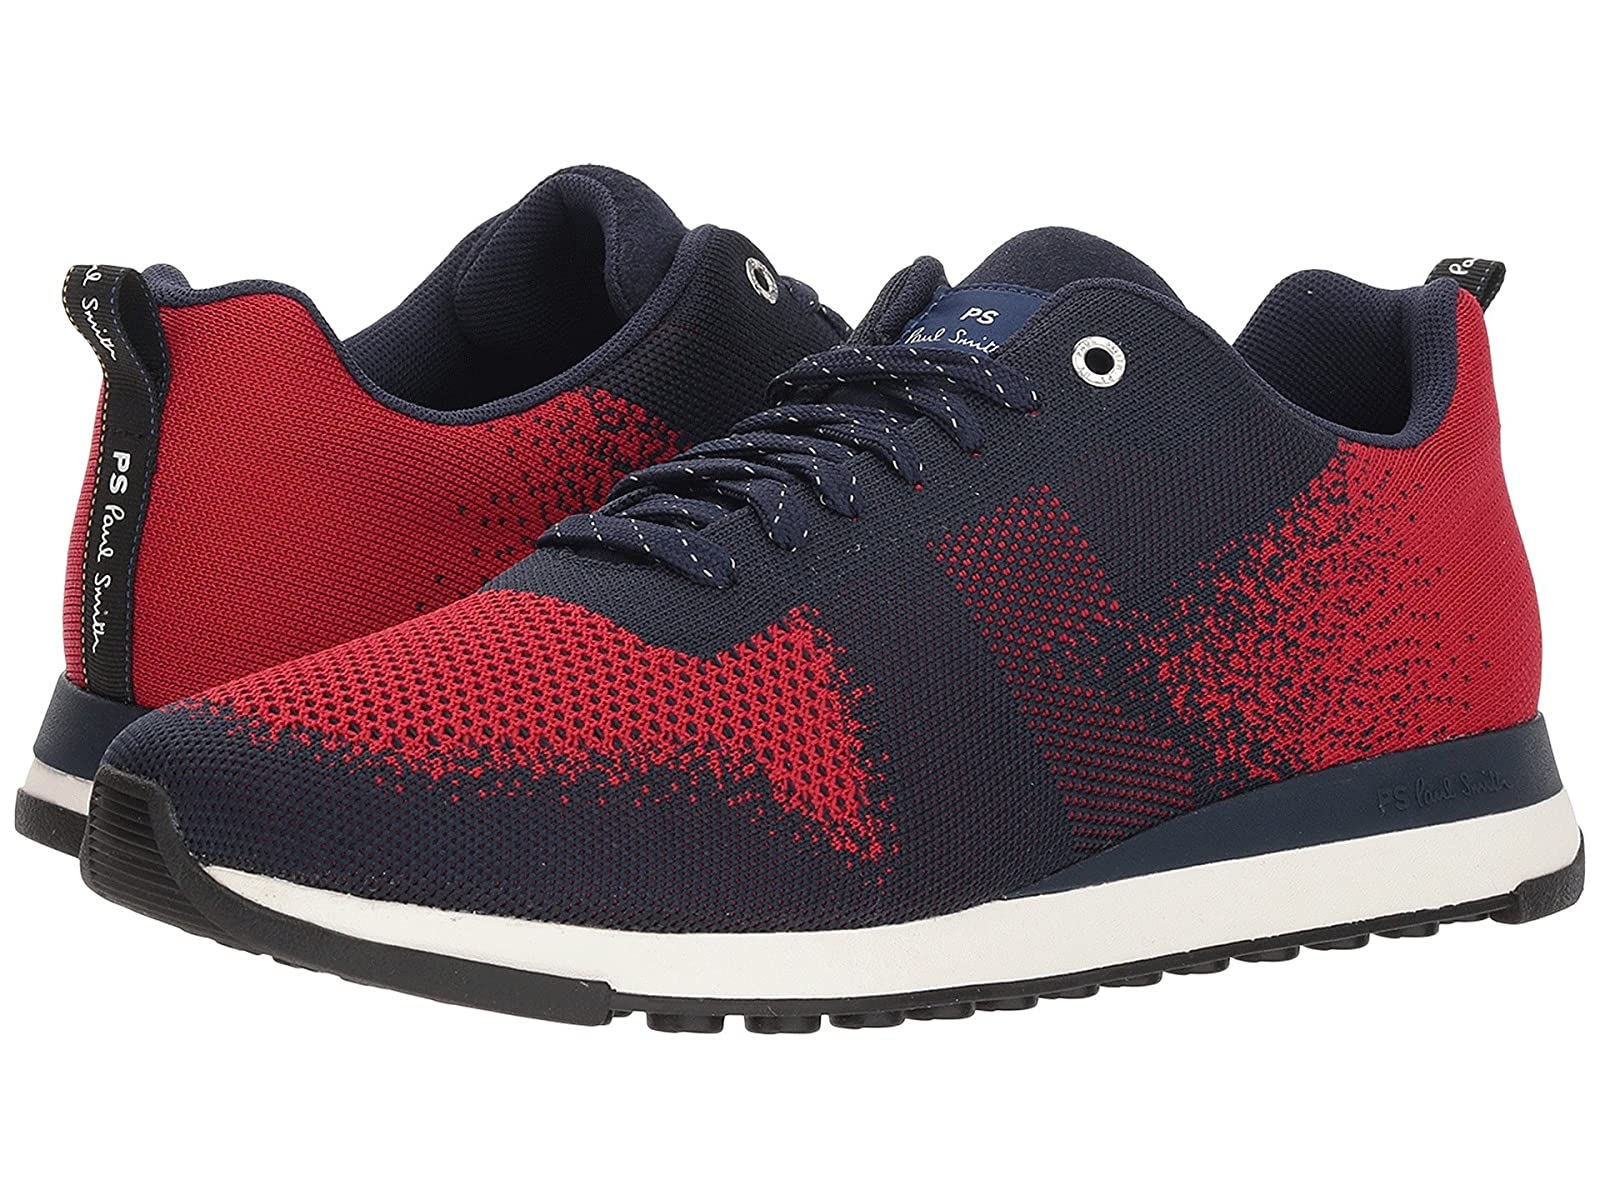 Paul Smith Rappid SneakerAtmospheric grades have affordable shoes